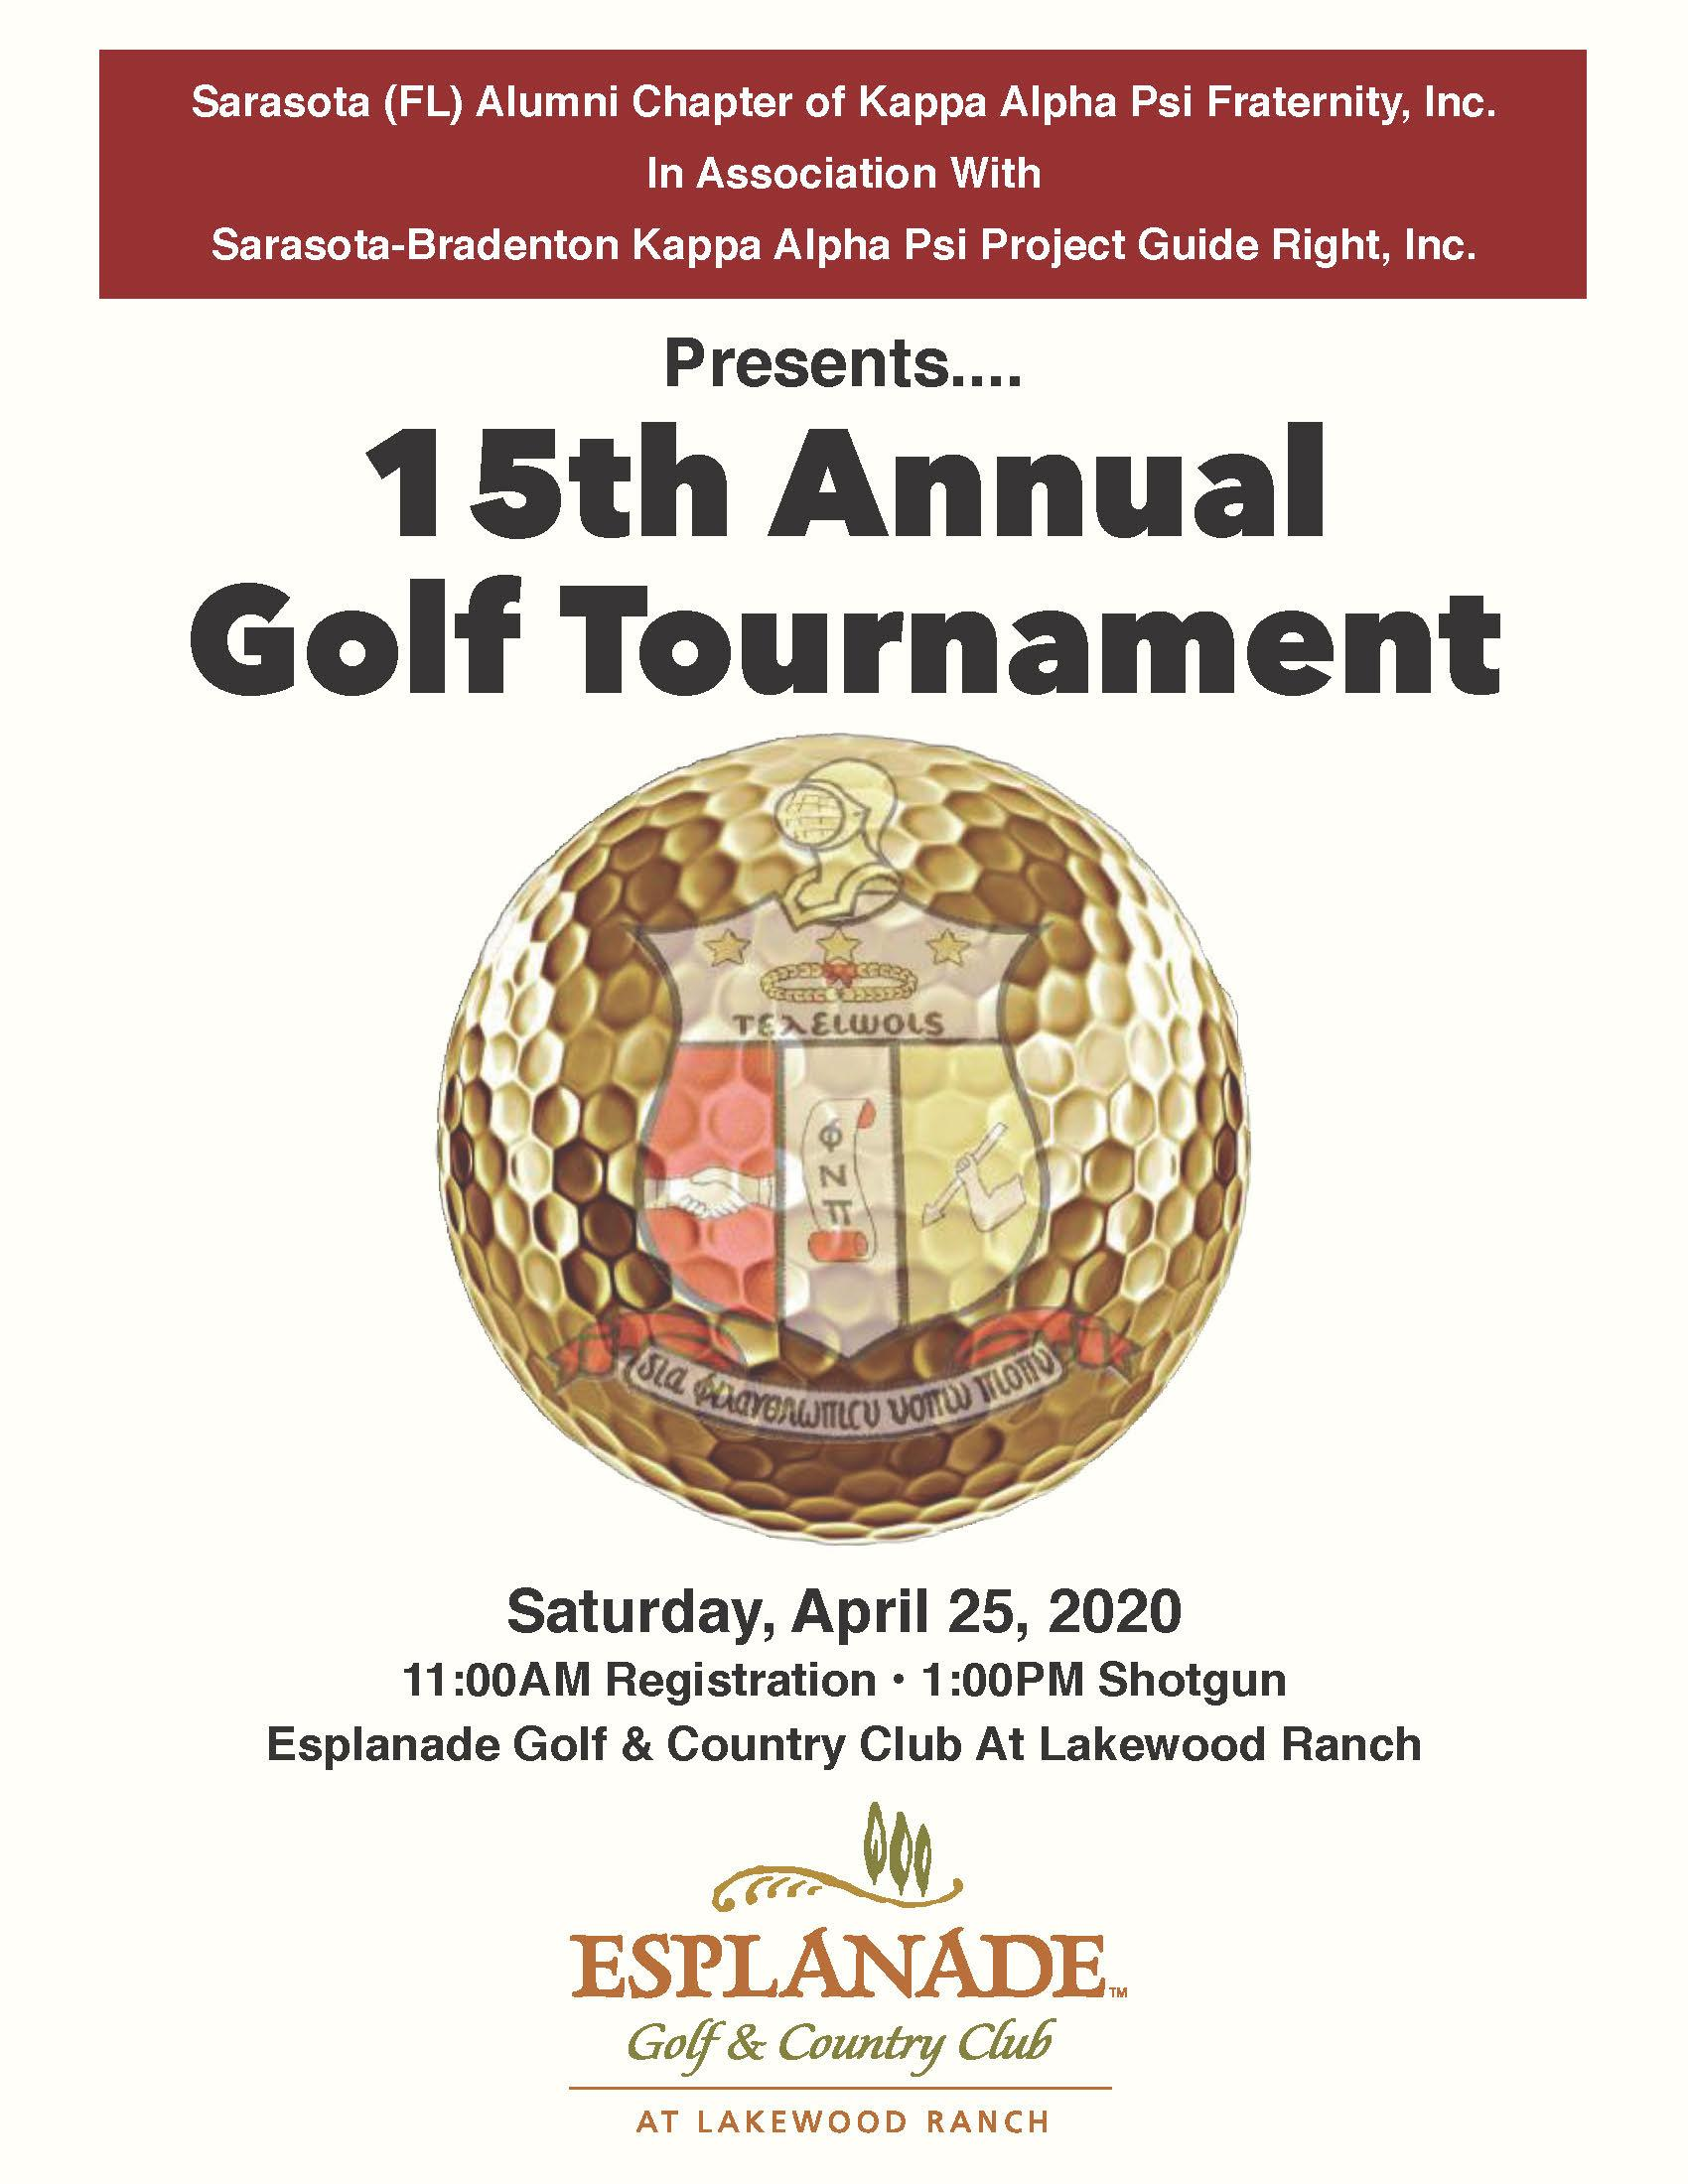 15th ANNUAL KAPPA ALPHA PSI FRATERNITY GOLF TOURNAMENT